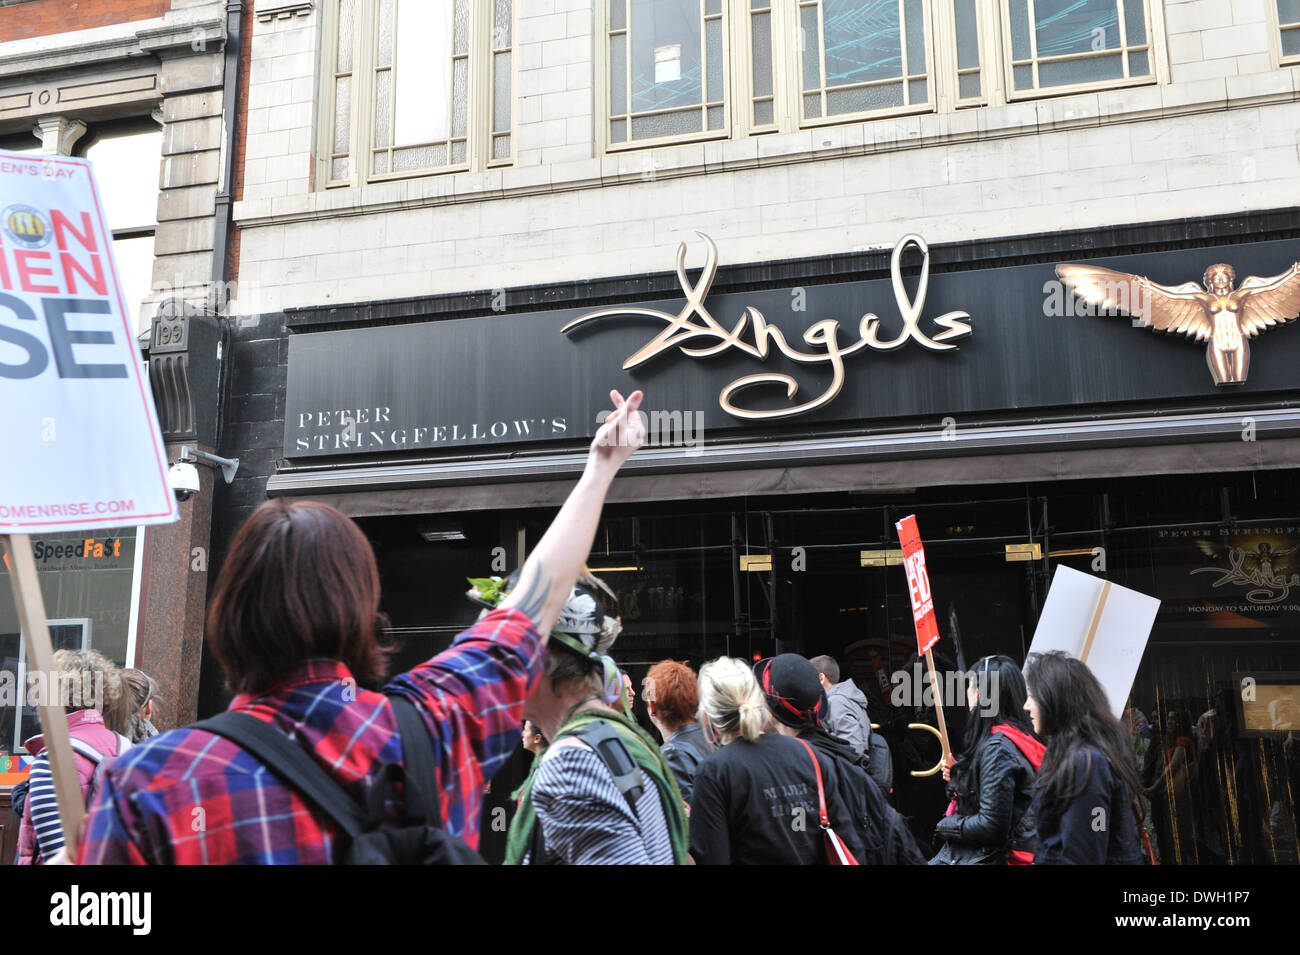 Wardour Street, London, UK. 8th March 2014. The 'Million Women Rise' protest march passes Peter Stringfellows Gentlemans Club on Waedour Street. Credit:  Matthew Chattle/Alamy Live News - Stock Image